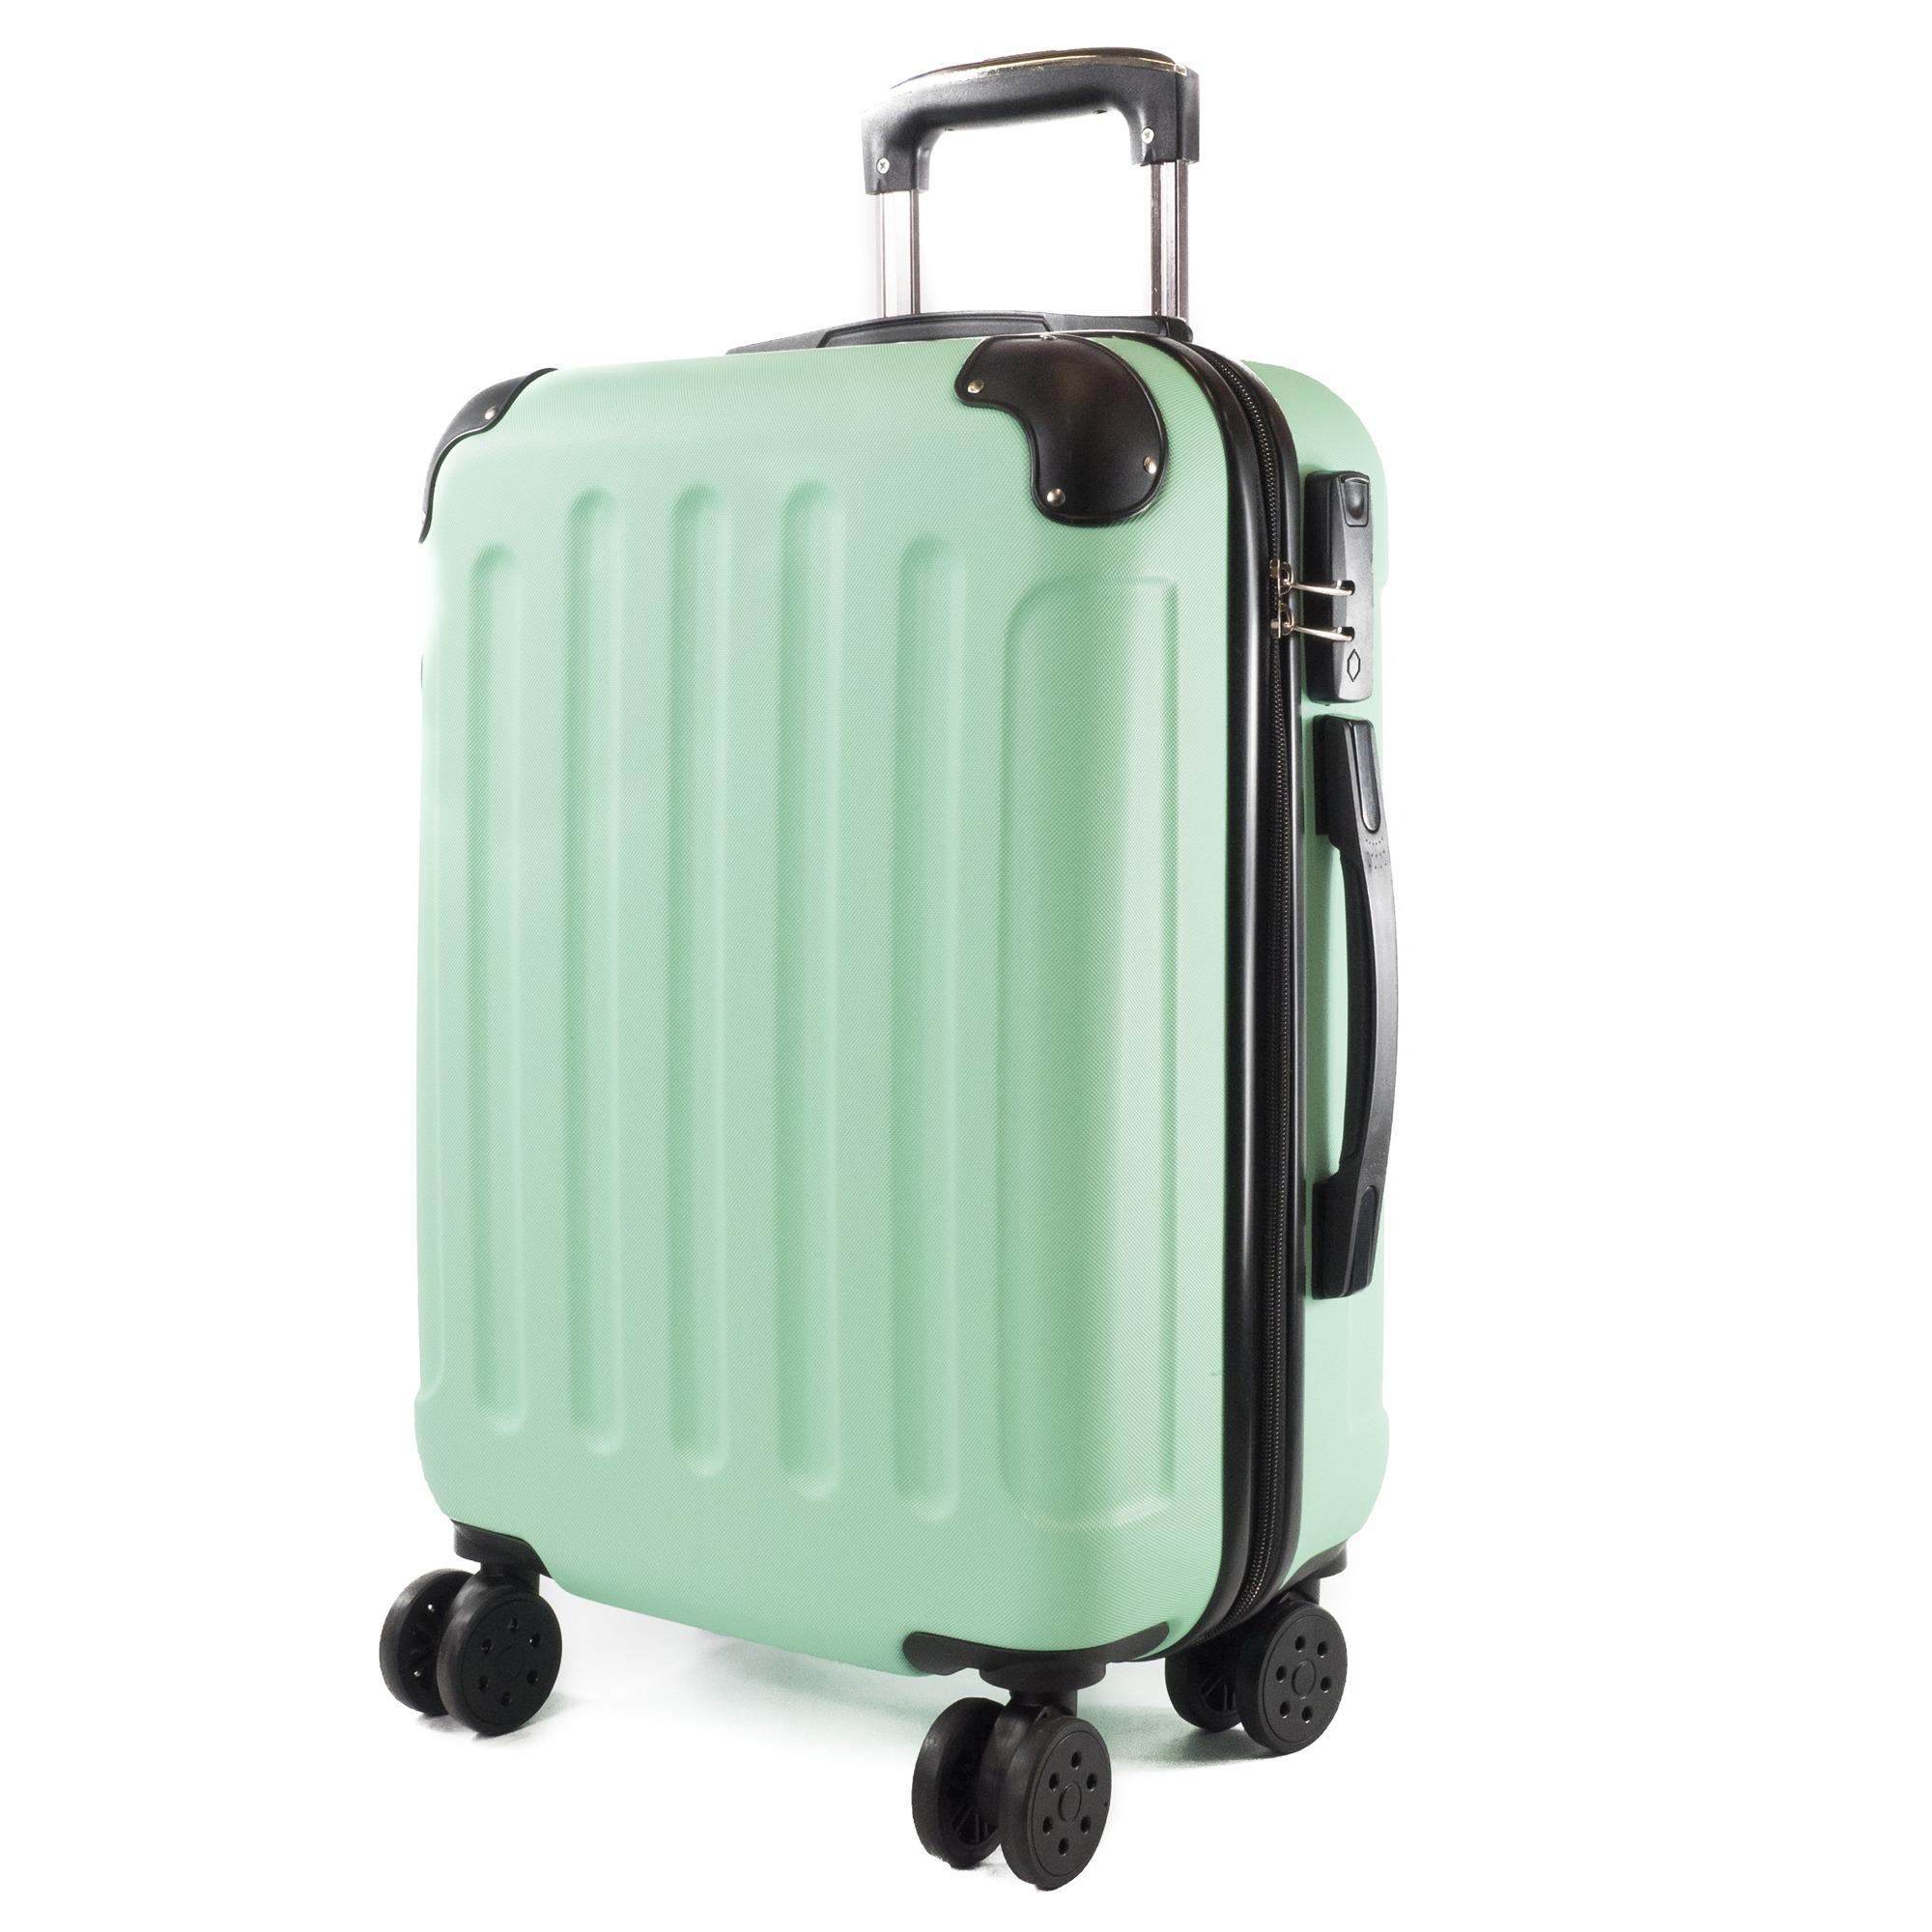 Discount 24 Inch Ultra Lightweight Luggage With Warranty